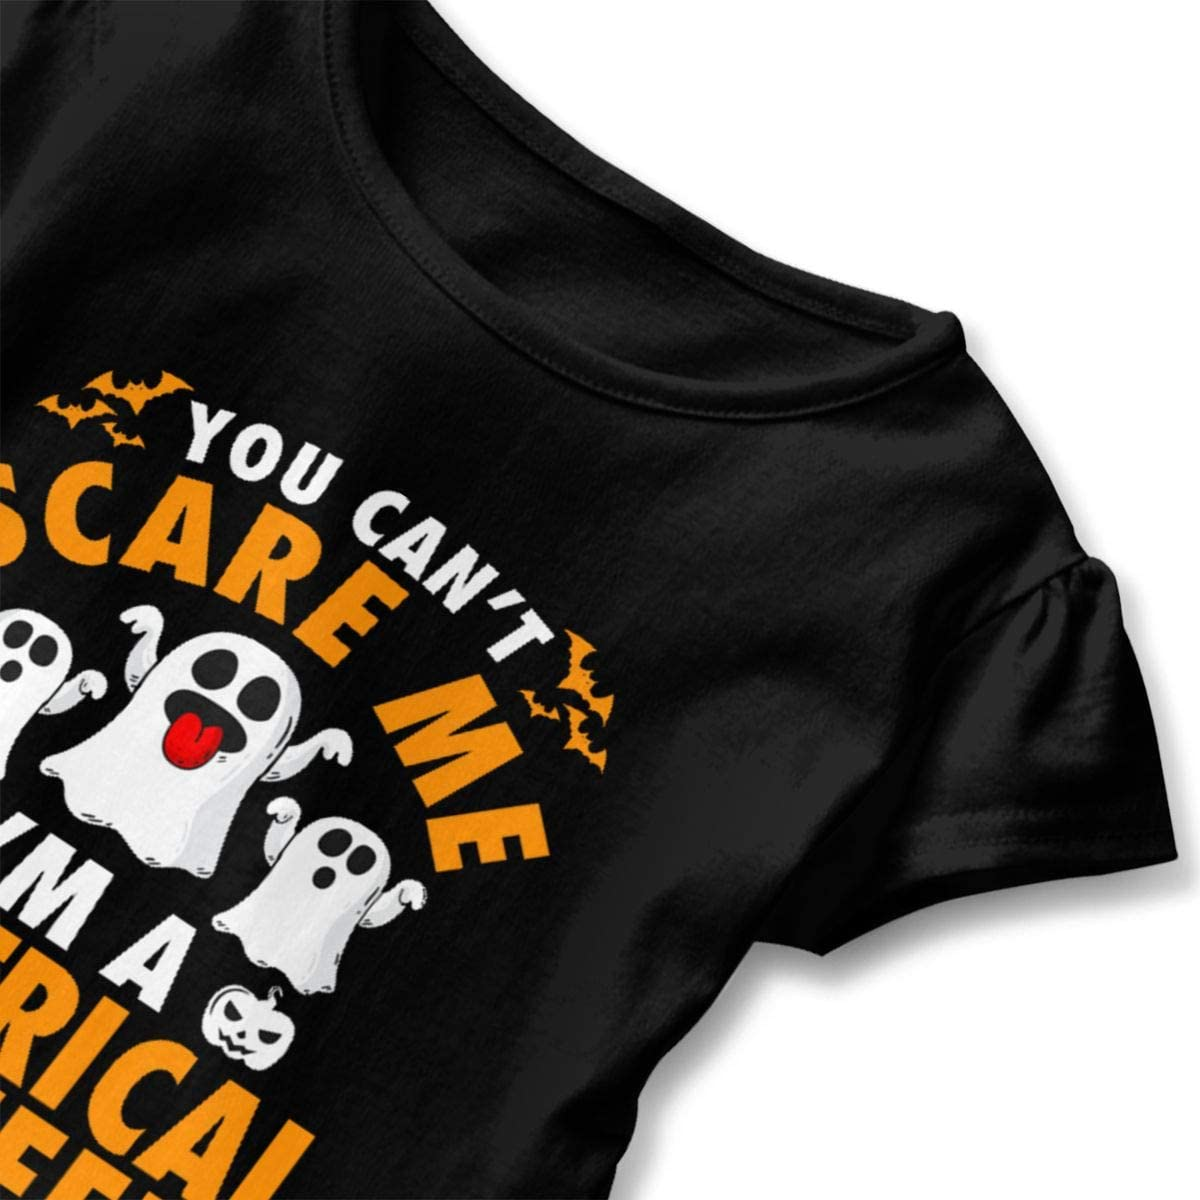 I Am an Electrical Engineer Shirt Baby Girls Flounced Casual Basic Shirt for 2-6 Years Old Baby Black